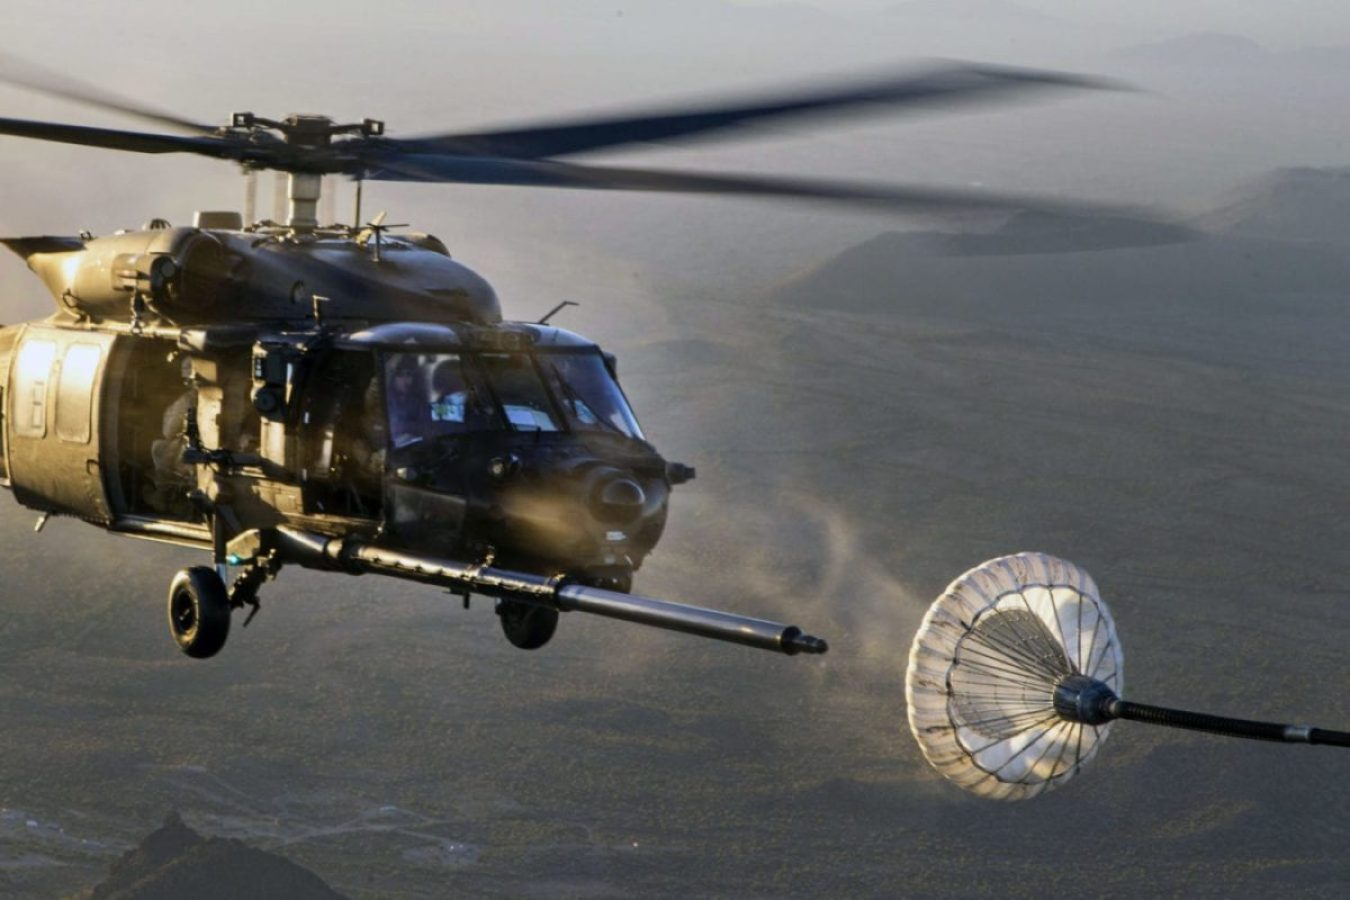 MH-60M Black Hawk helicopter participates in an aerial refueling exercise